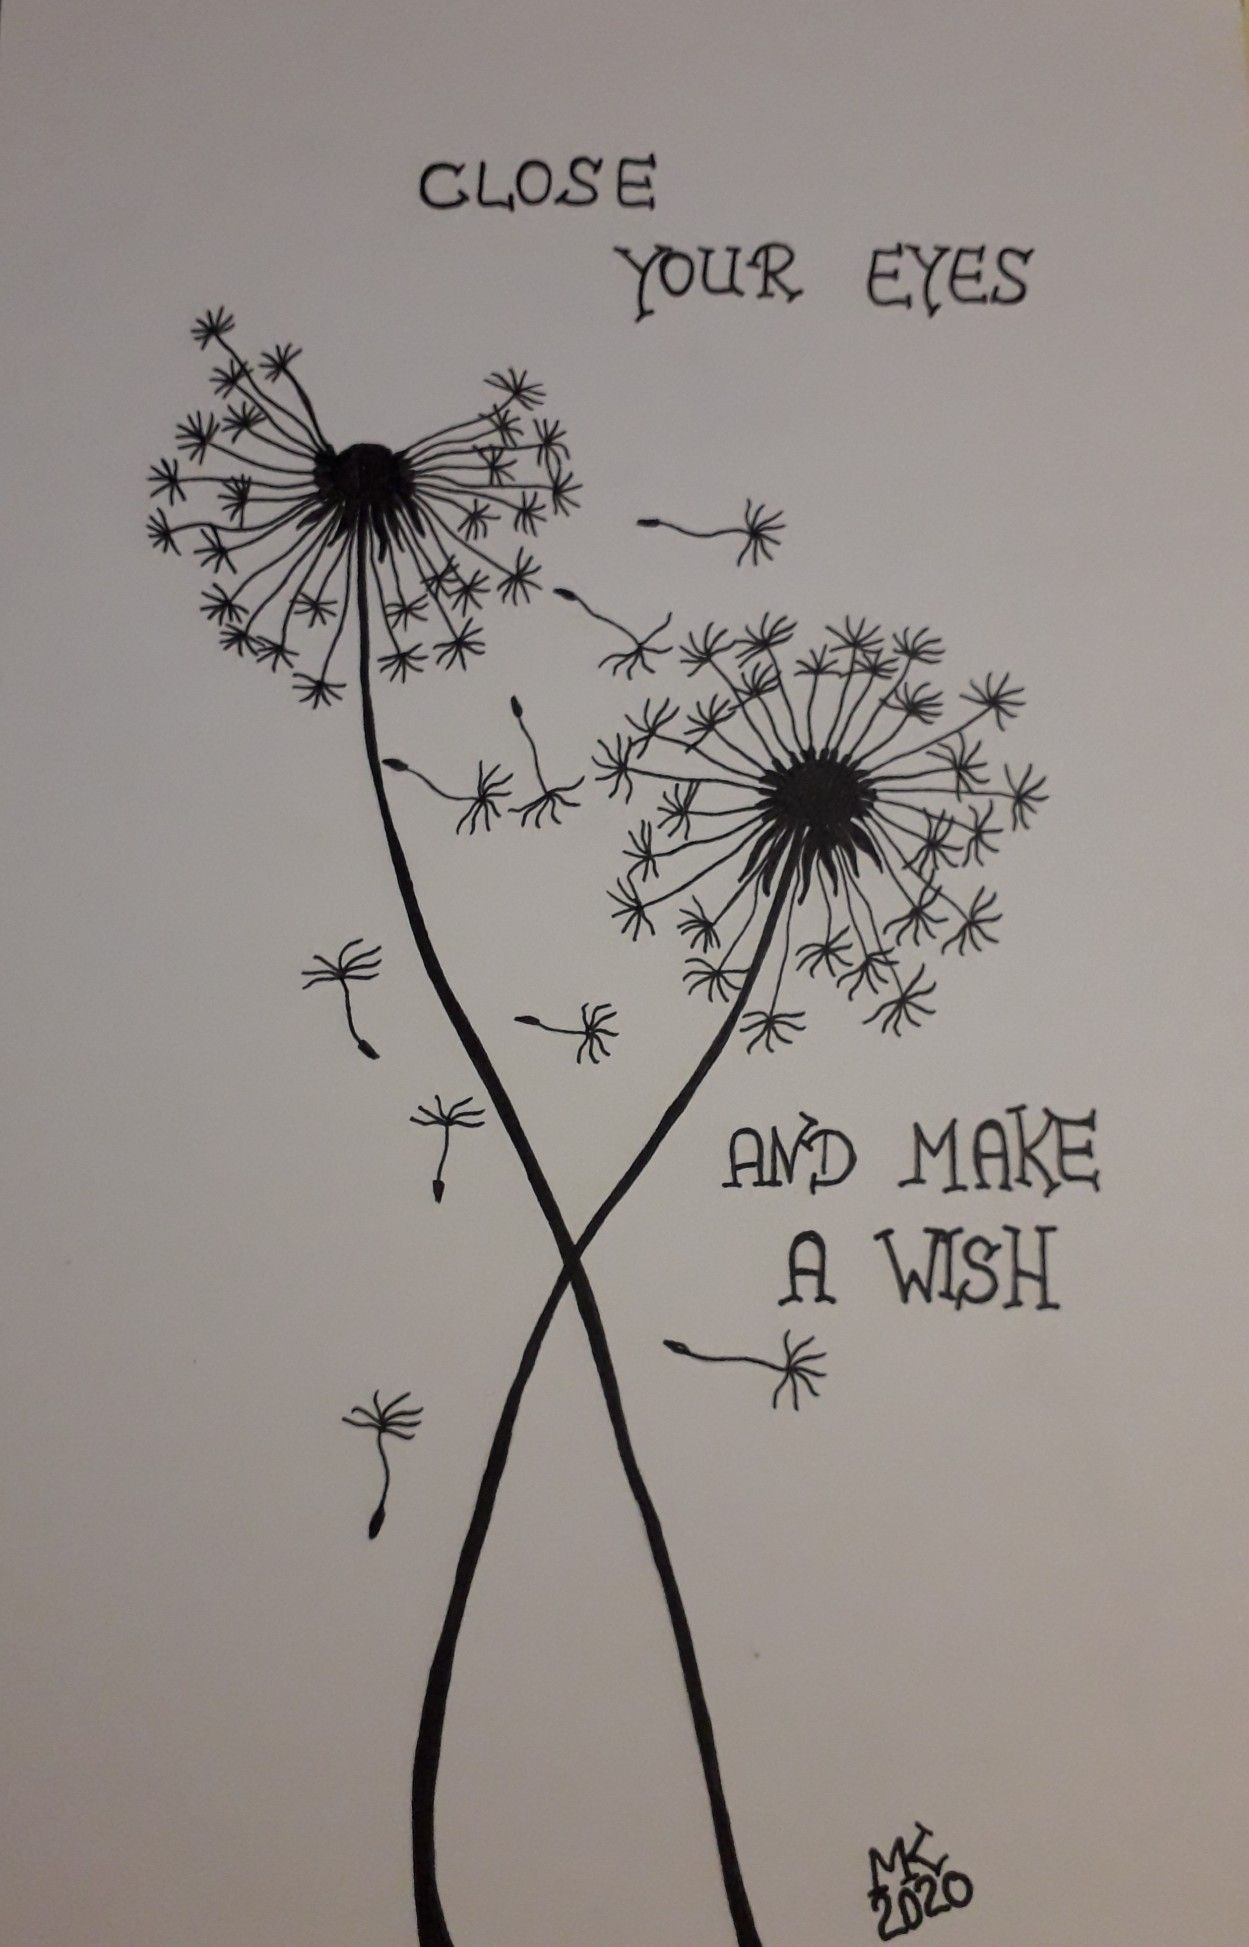 CLOSE #YOUR #EYES AND #MAKE A #WISH #Pusteblume #Zeichnung in